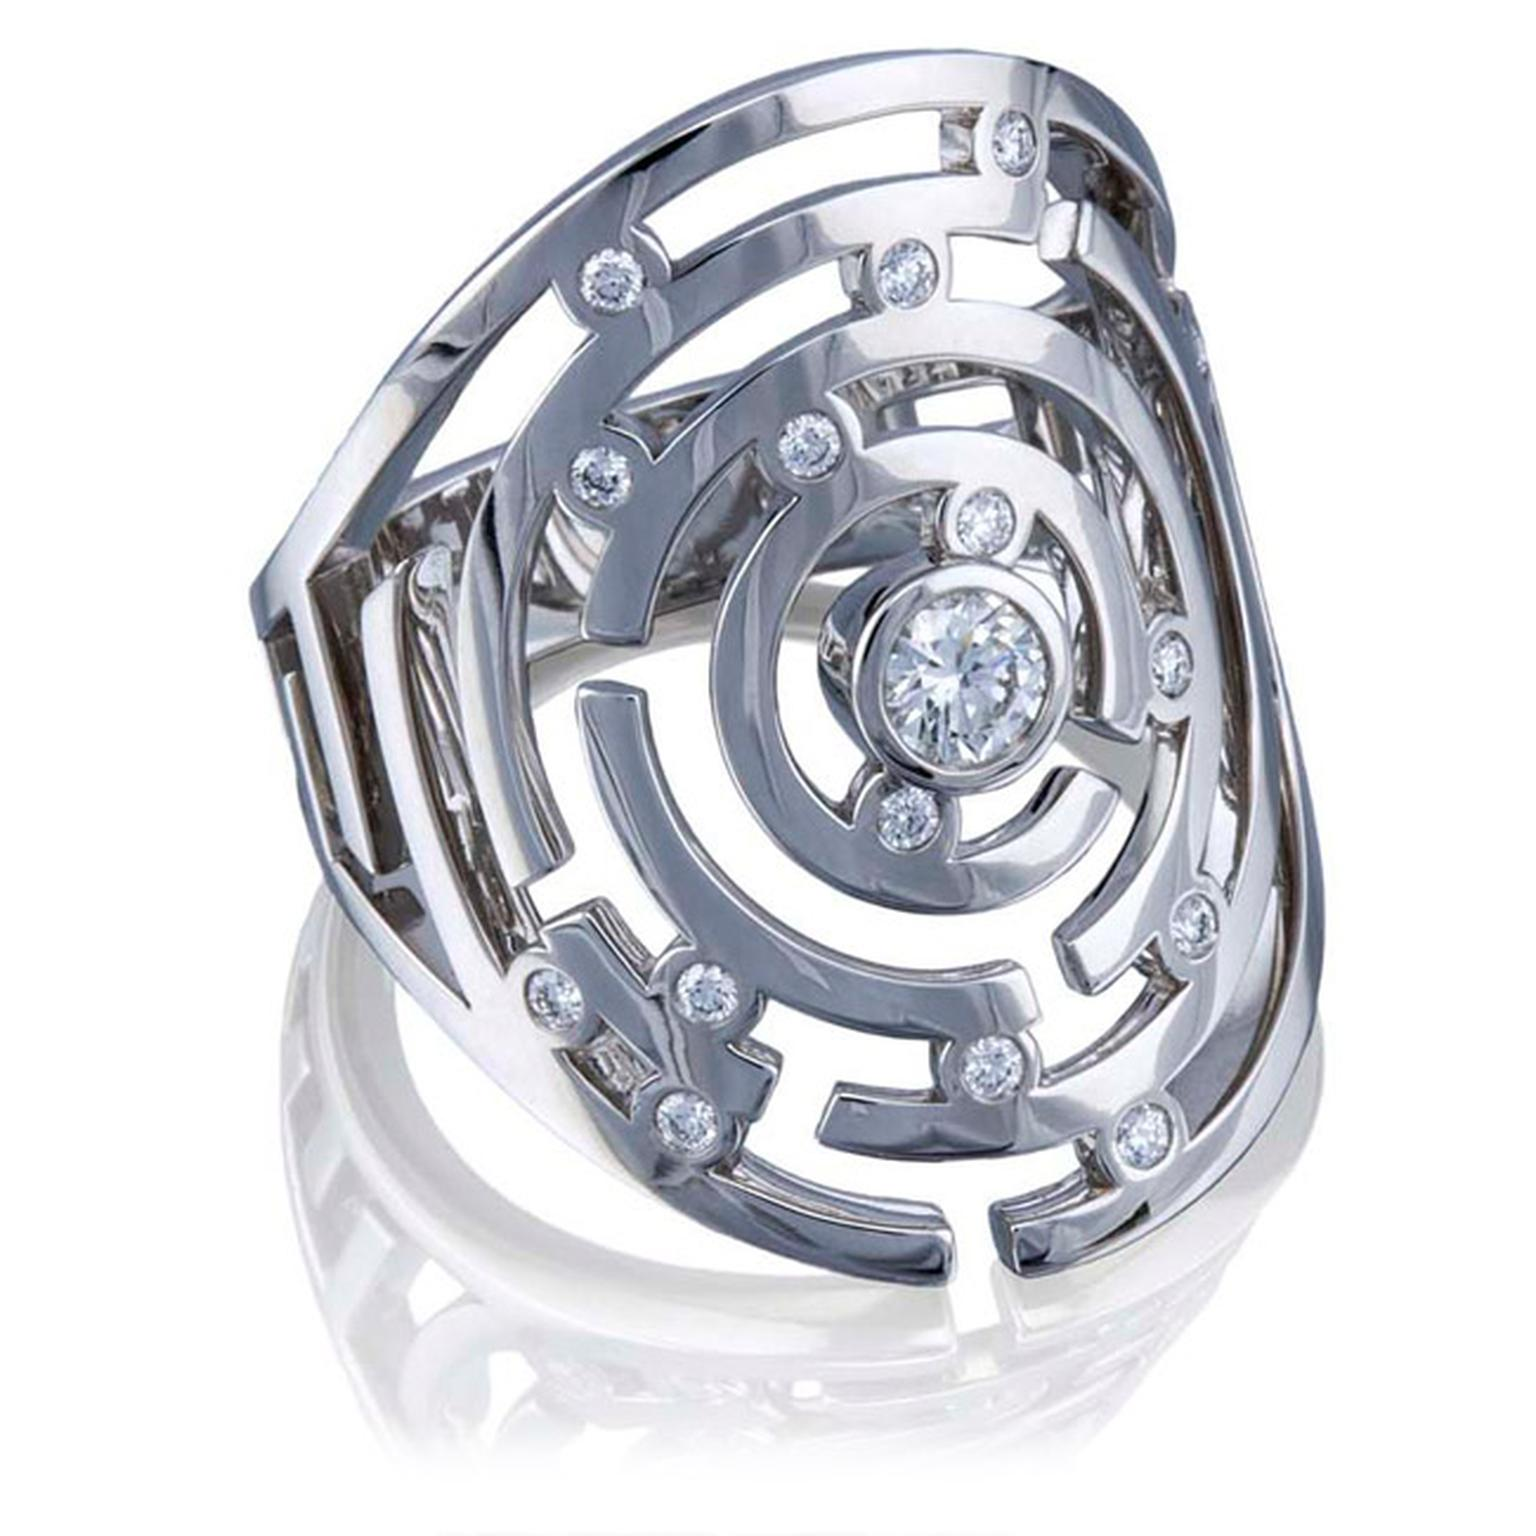 Boodles-Maze-WG-Ring-Main